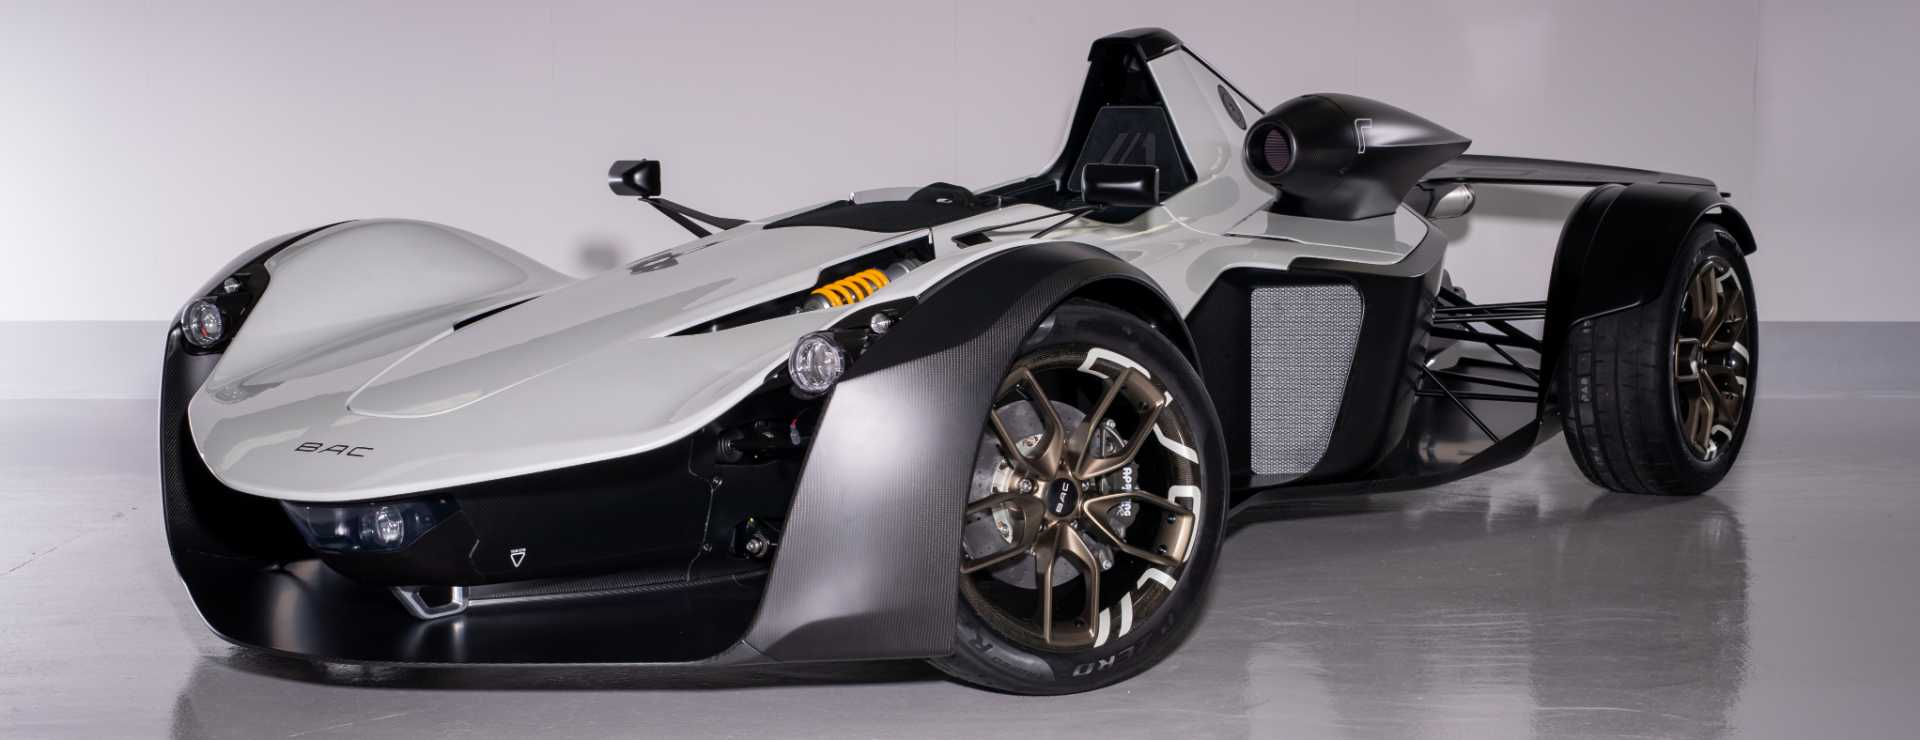 BAC Mono R Supercar - image courtesy of Stratasys / Briggs Automotive Company